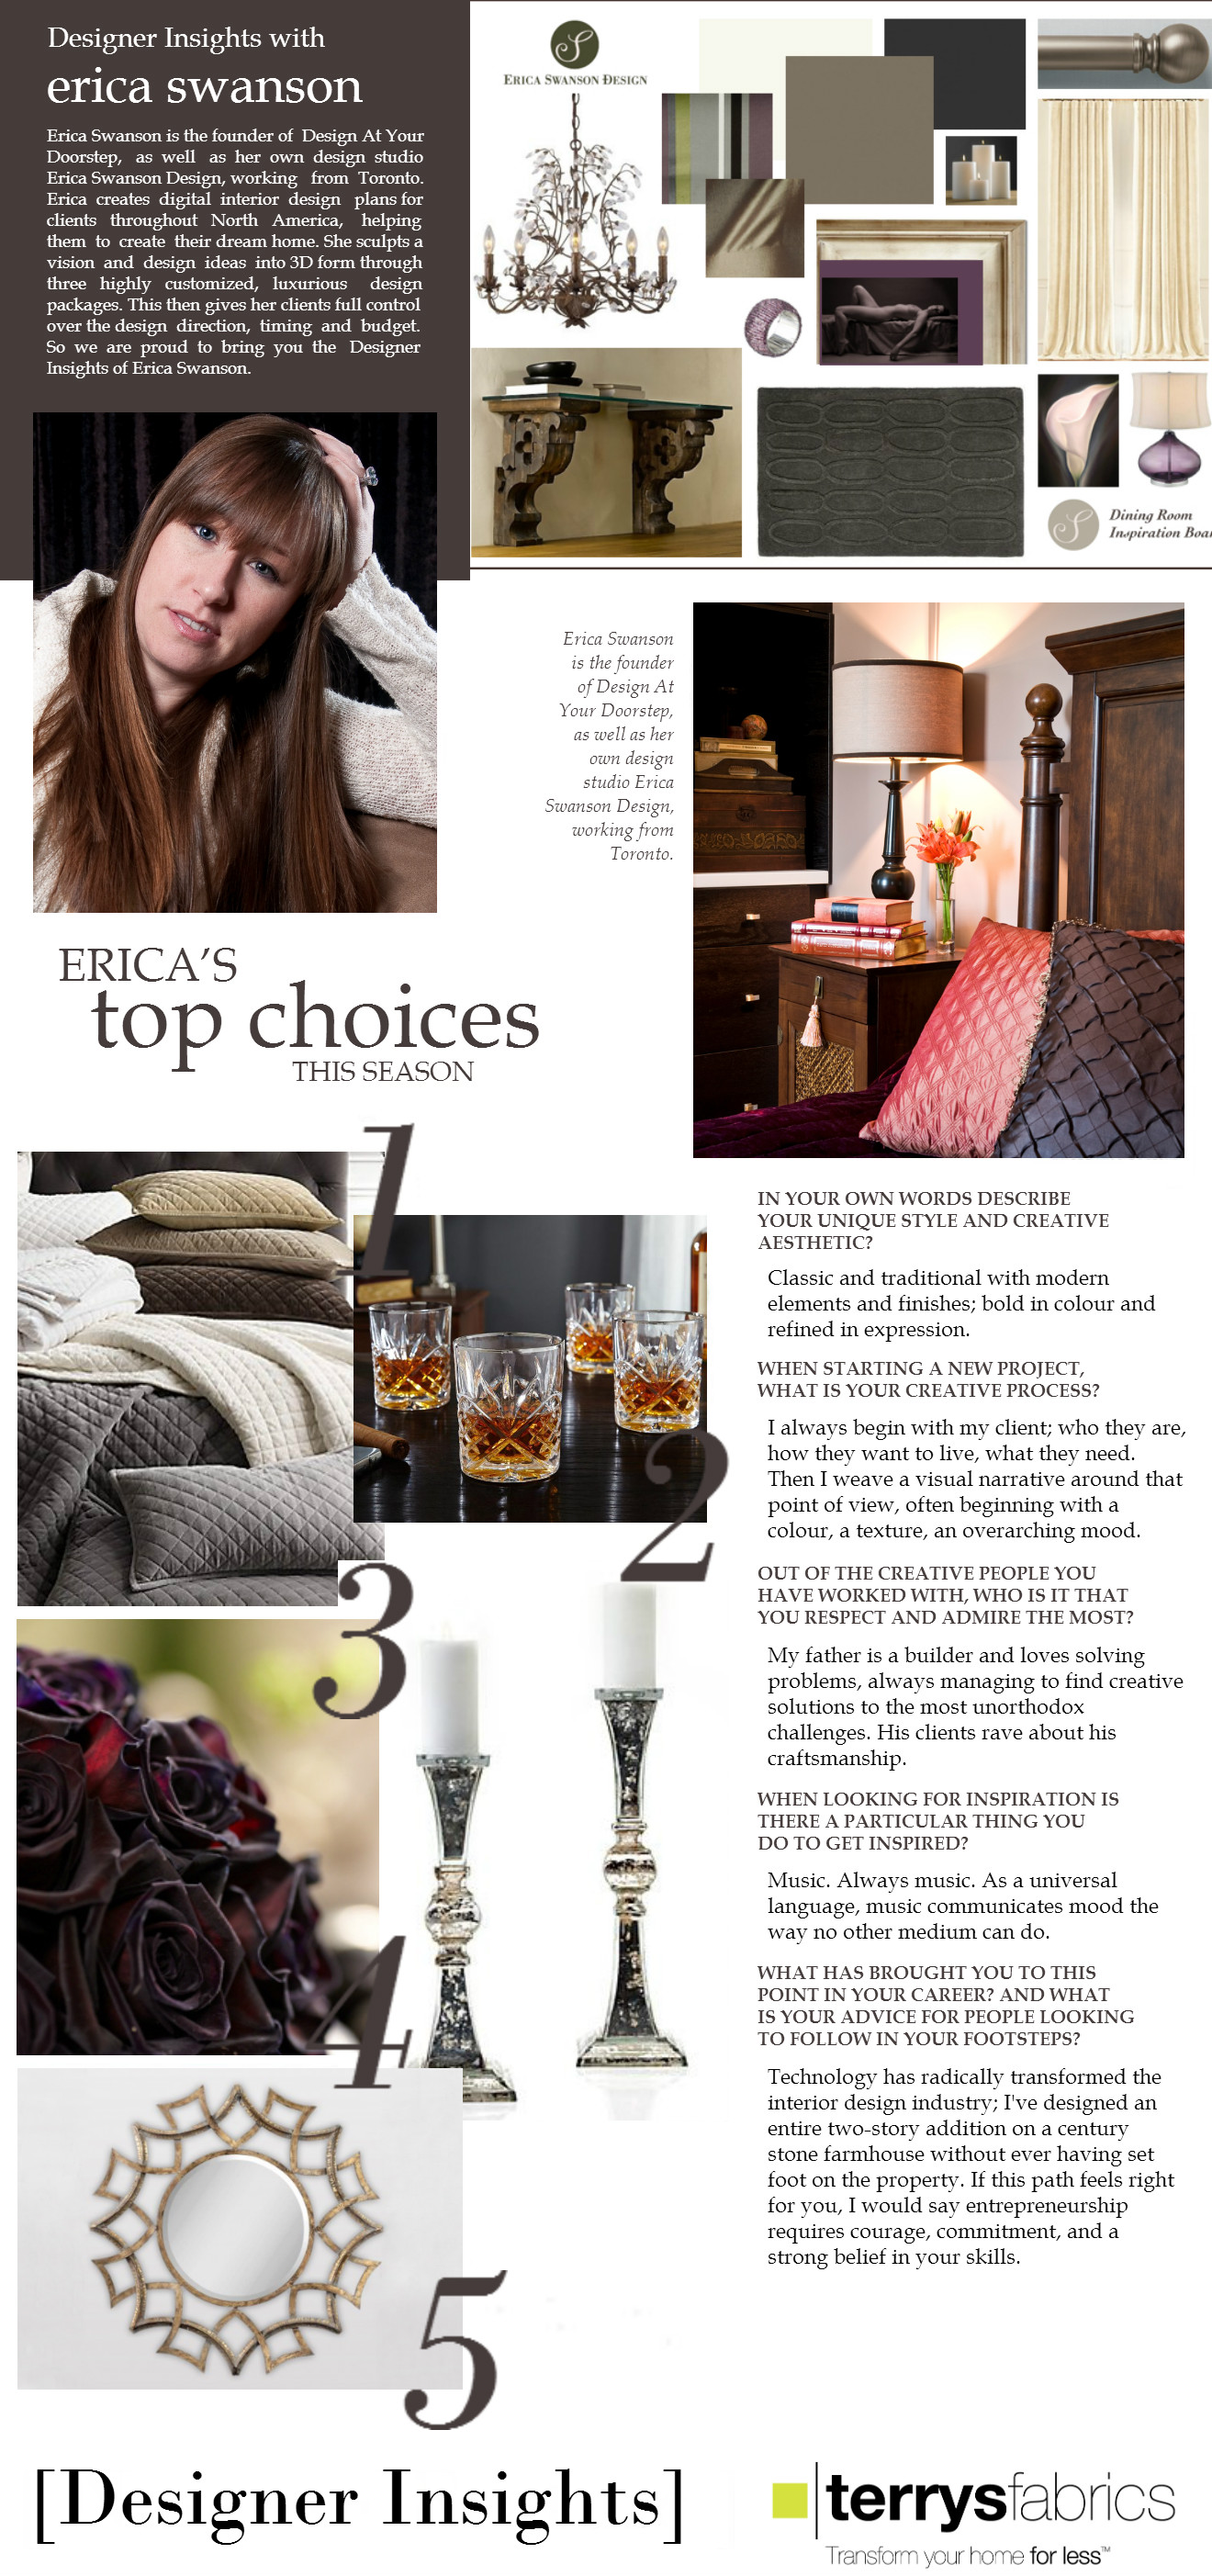 Terry's Fabrics - Designer Insights